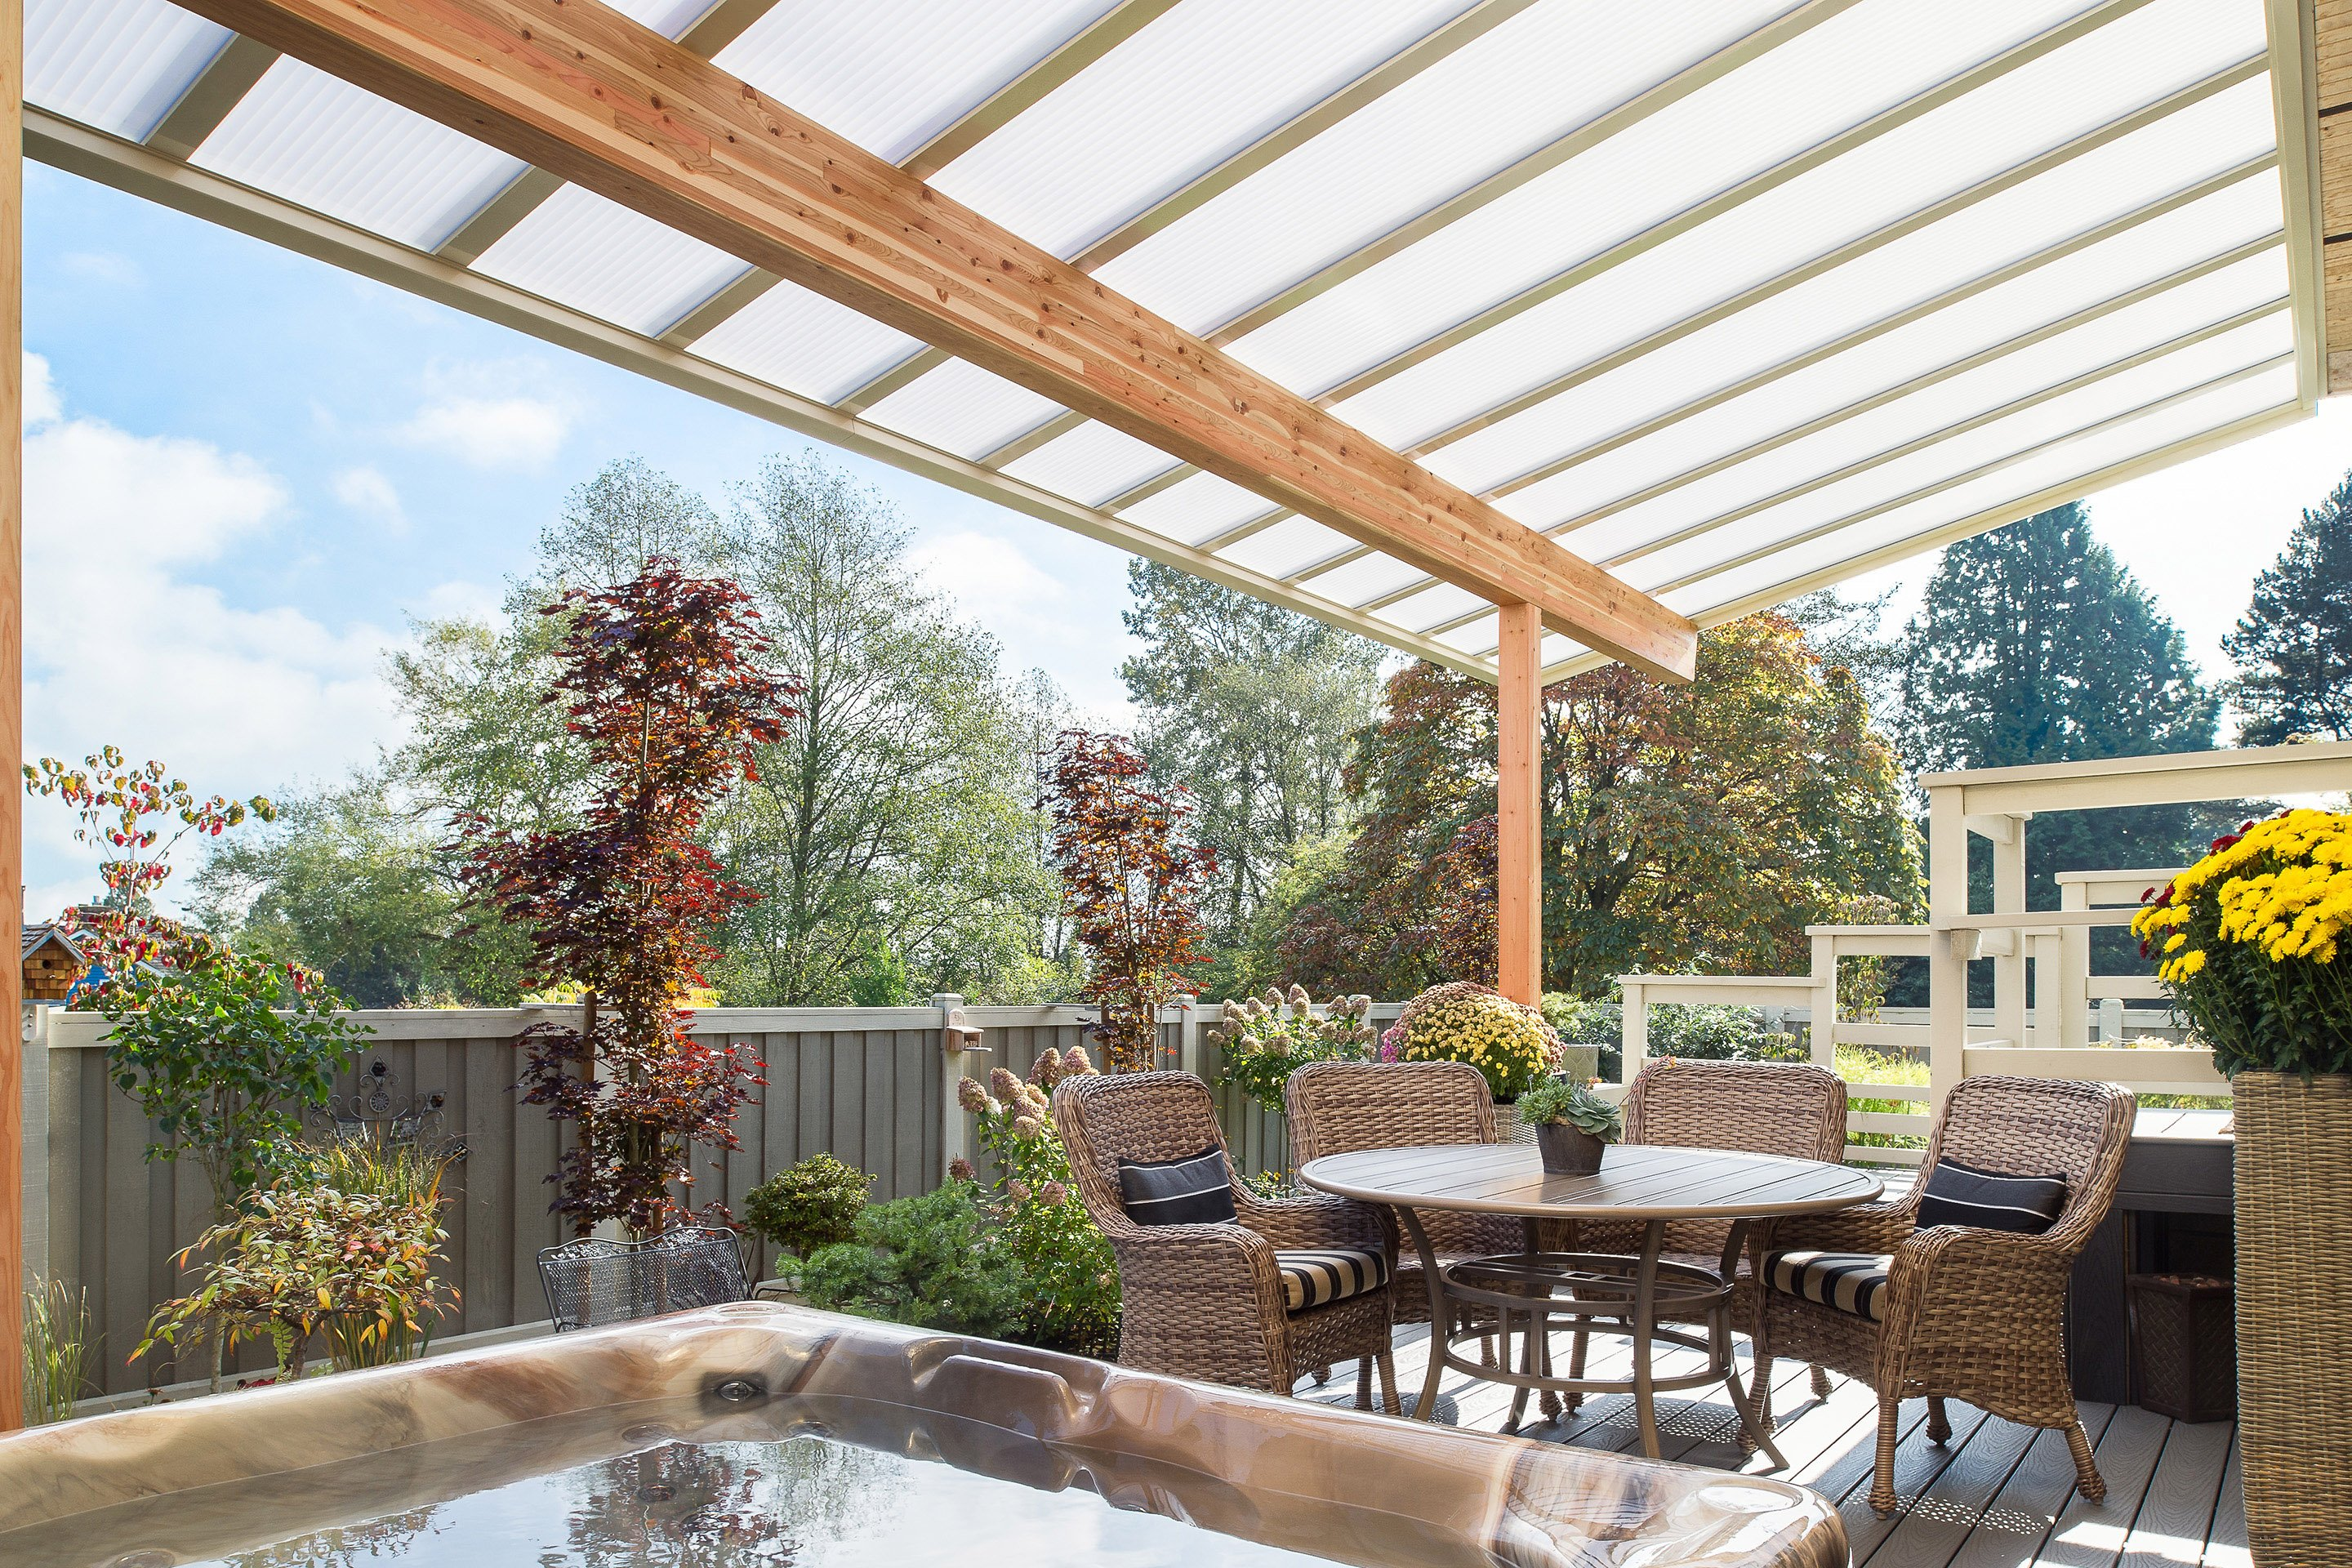 Patio Cover Options in Canada | Lumon on Patio Cover Ideas Wood id=39489